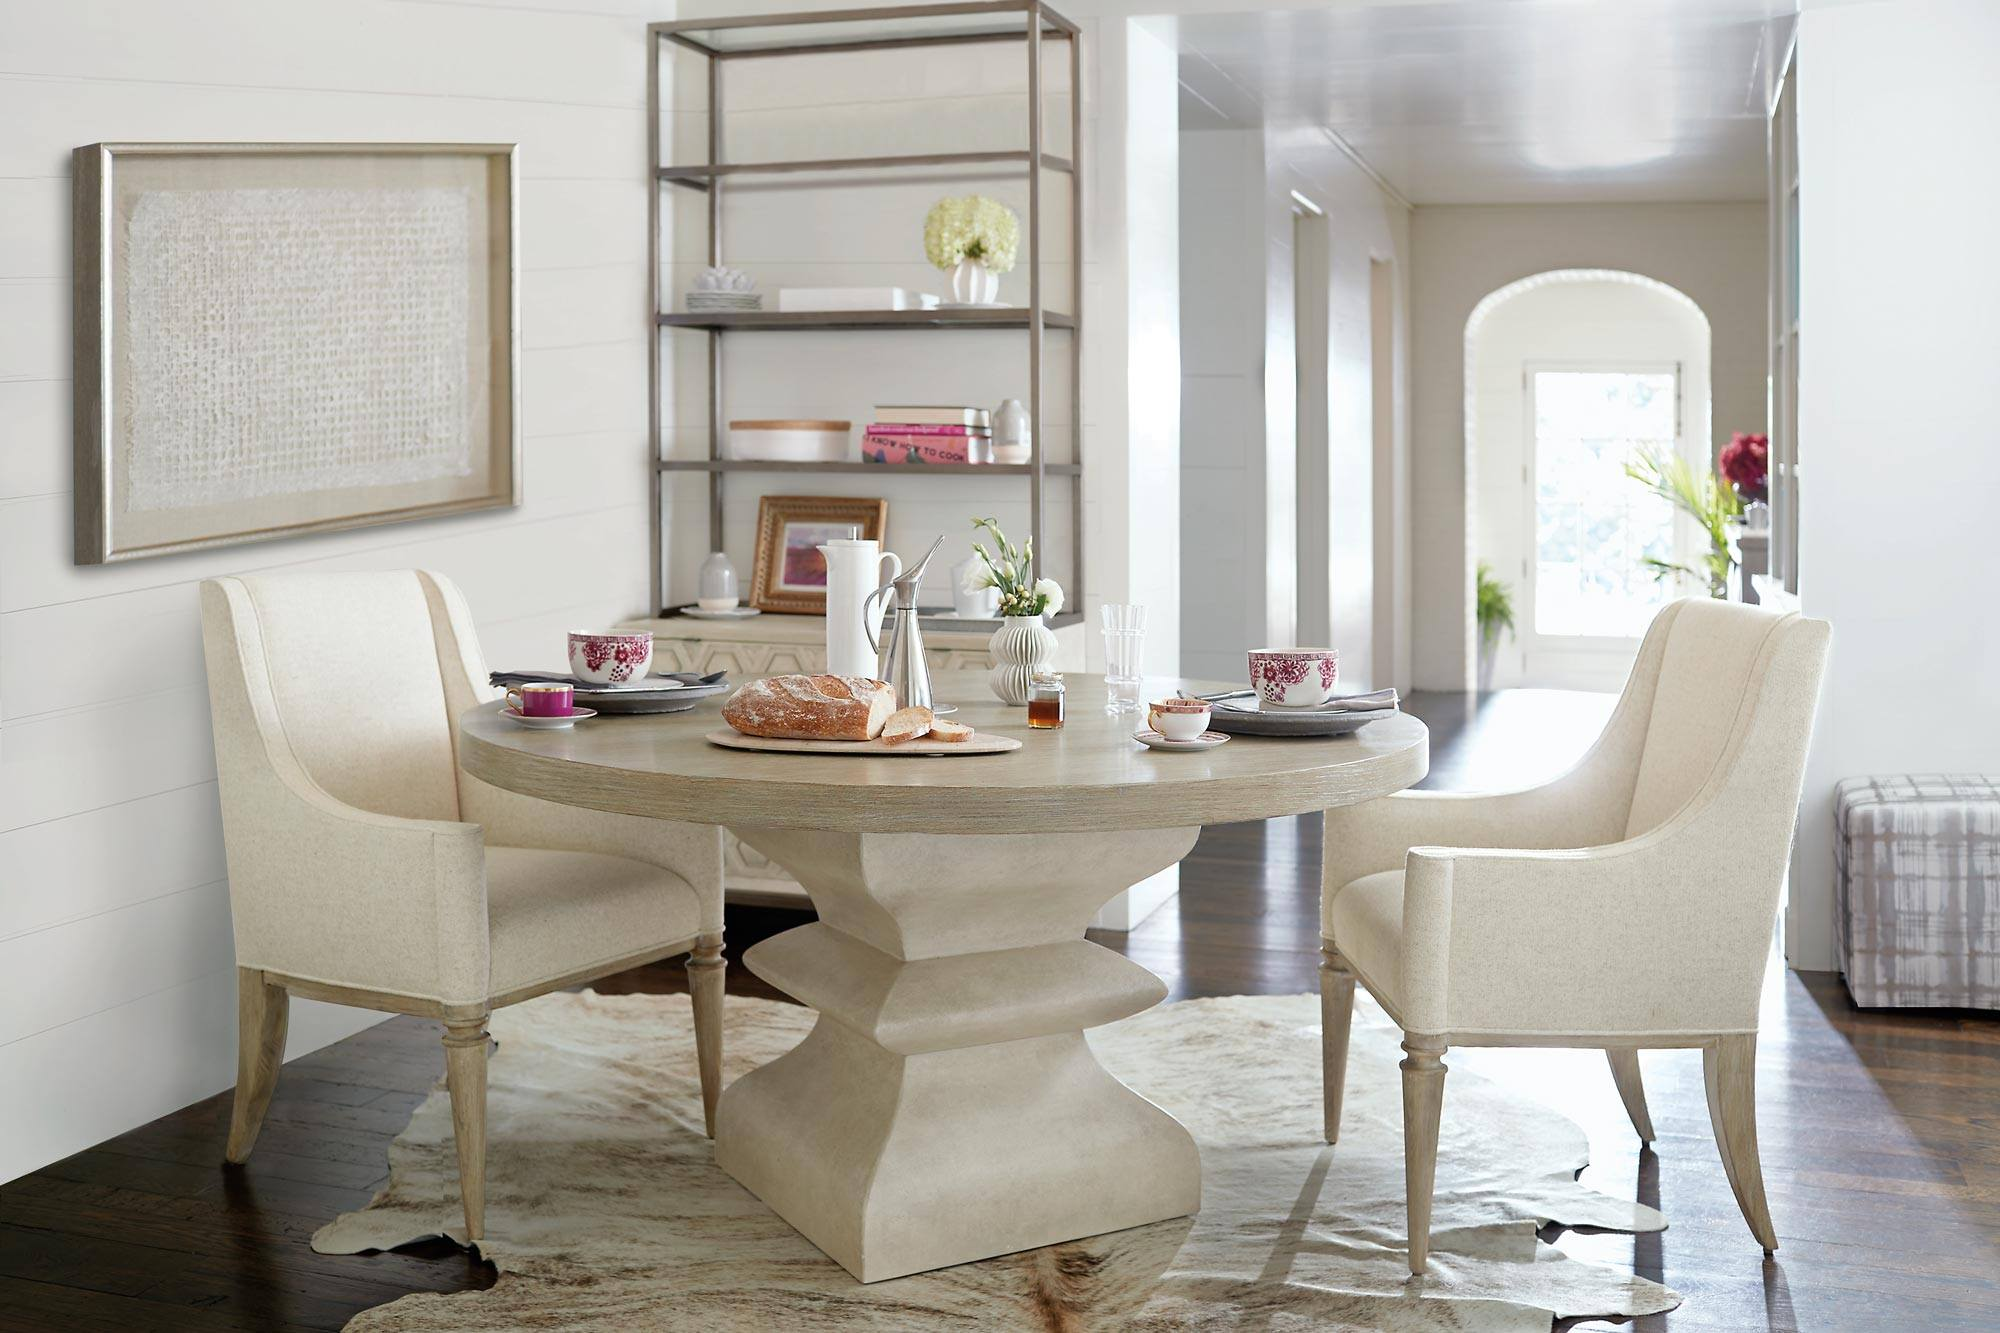 Bernhardt Round Dining Table with Pink Teacups | Stash Home